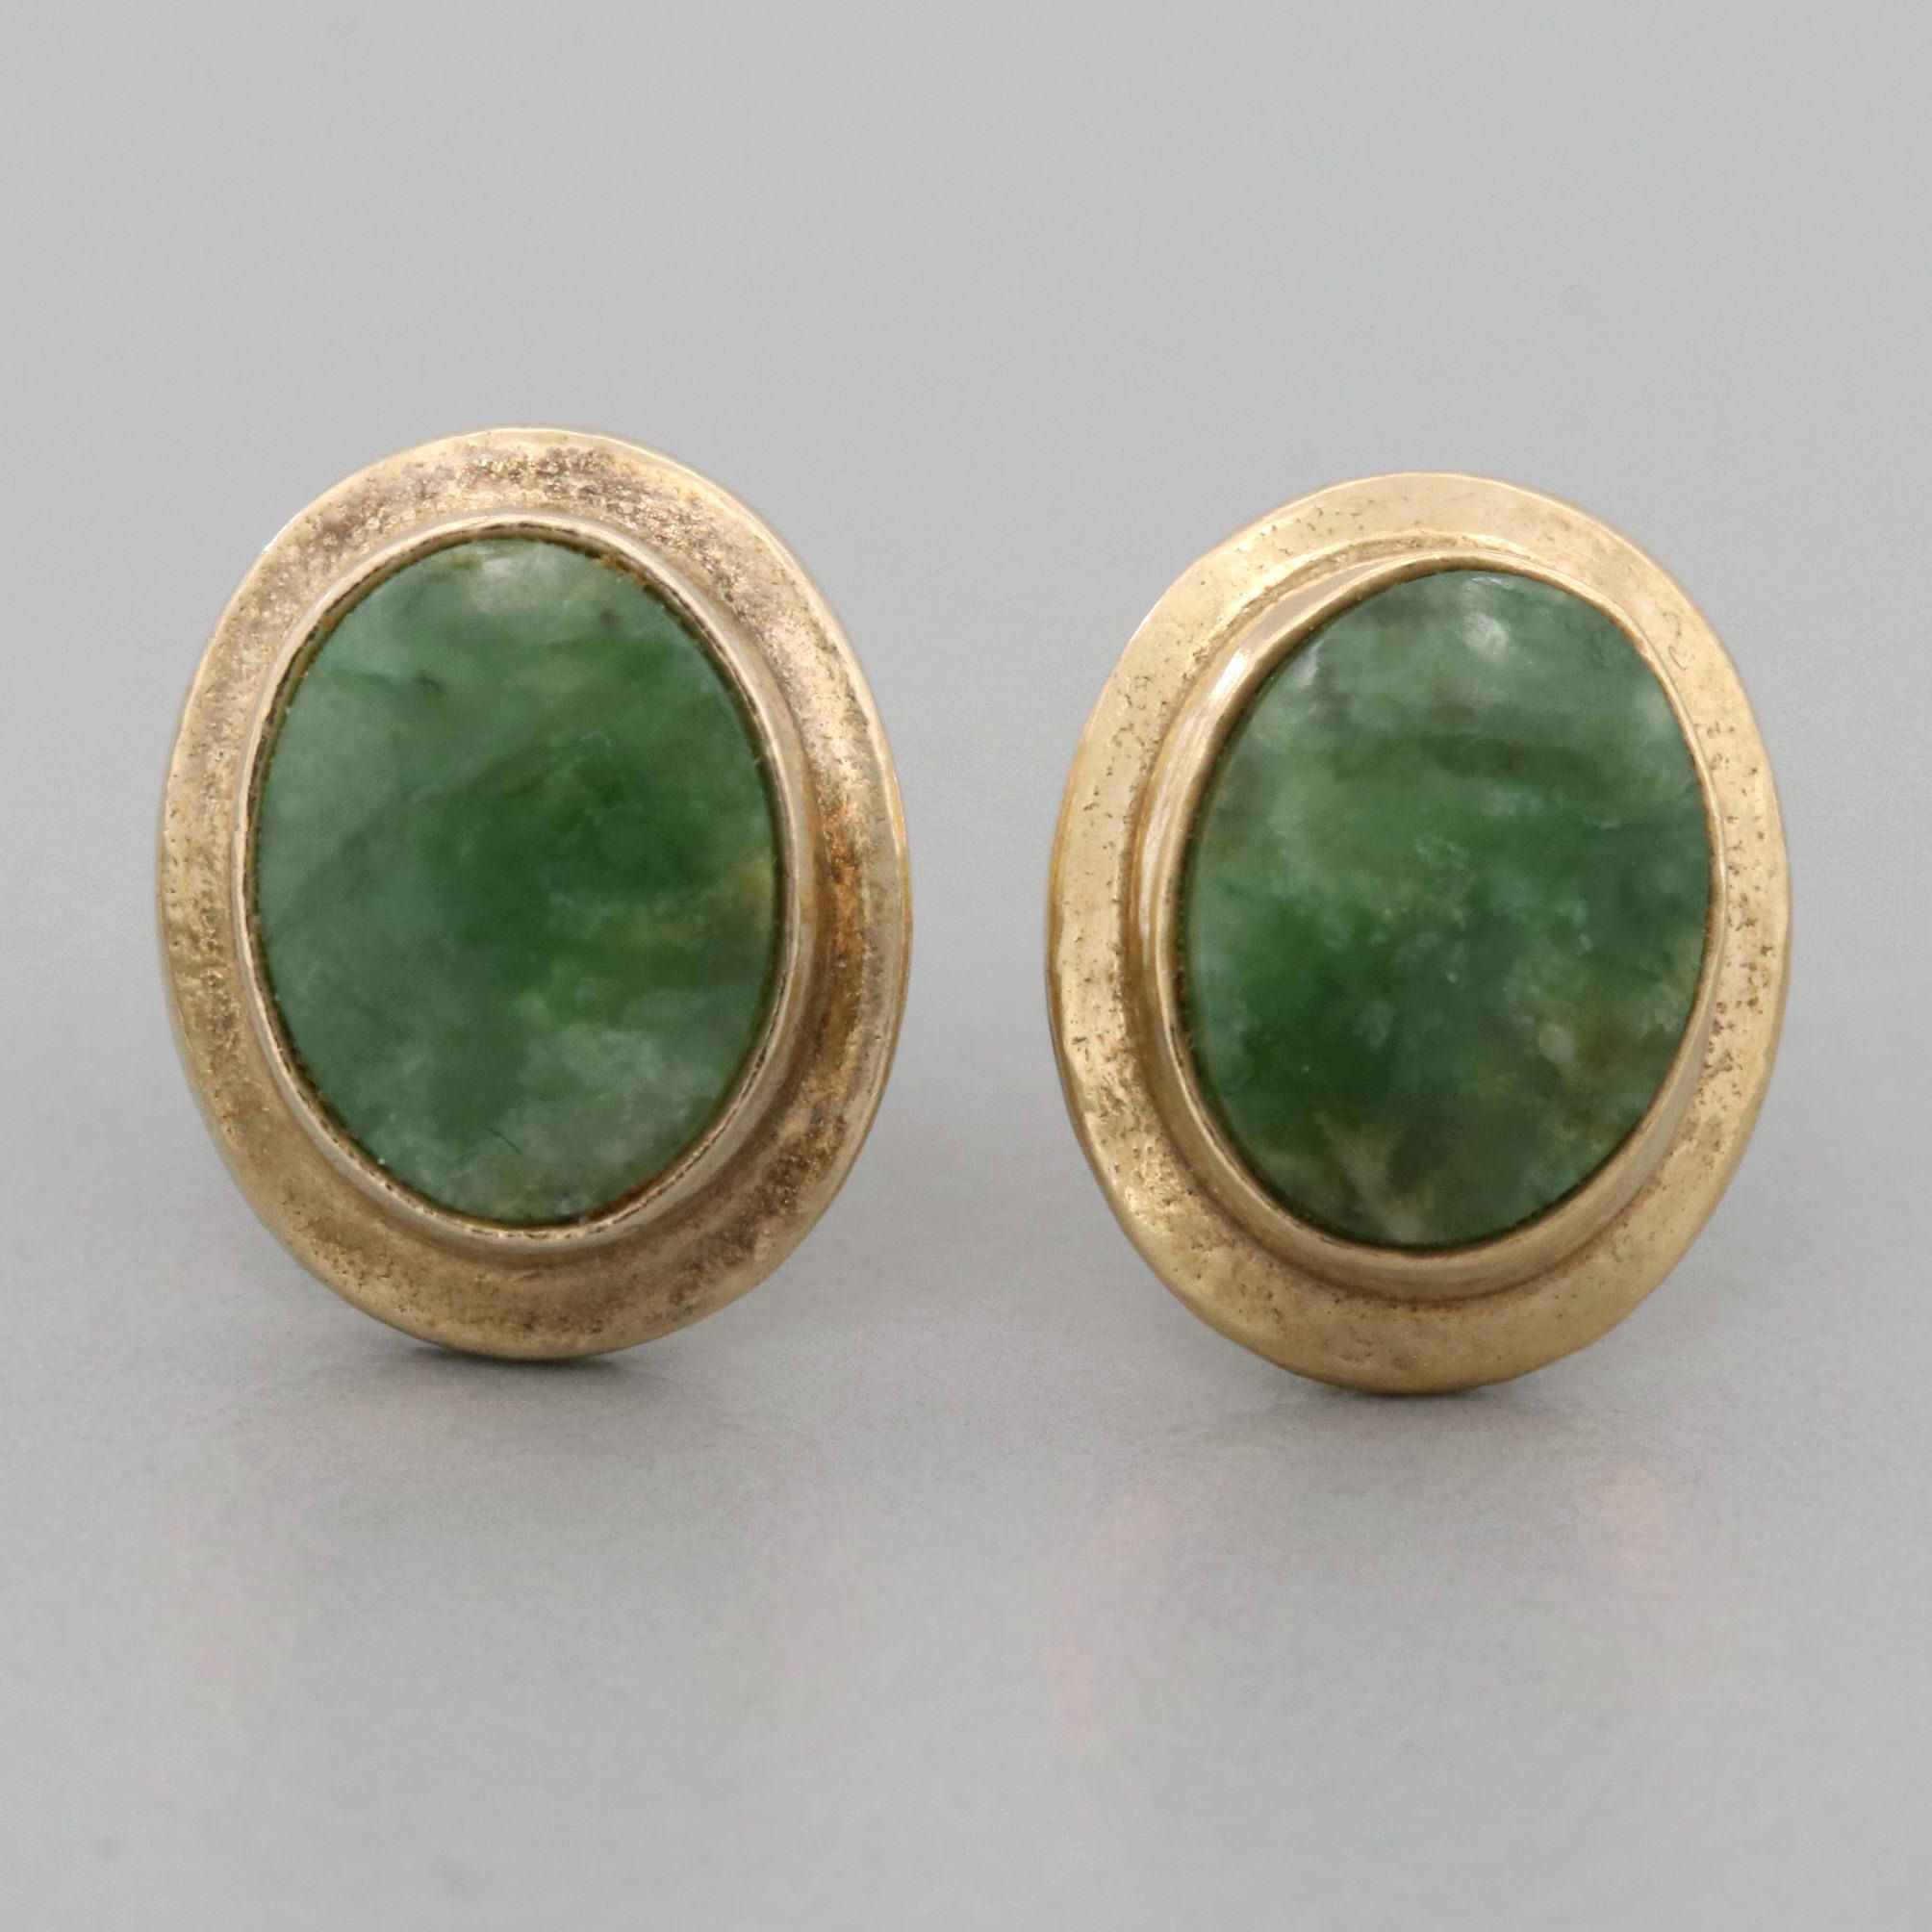 14K Yellow Gold and Gold Tone Connemara Marble Stud Earrings